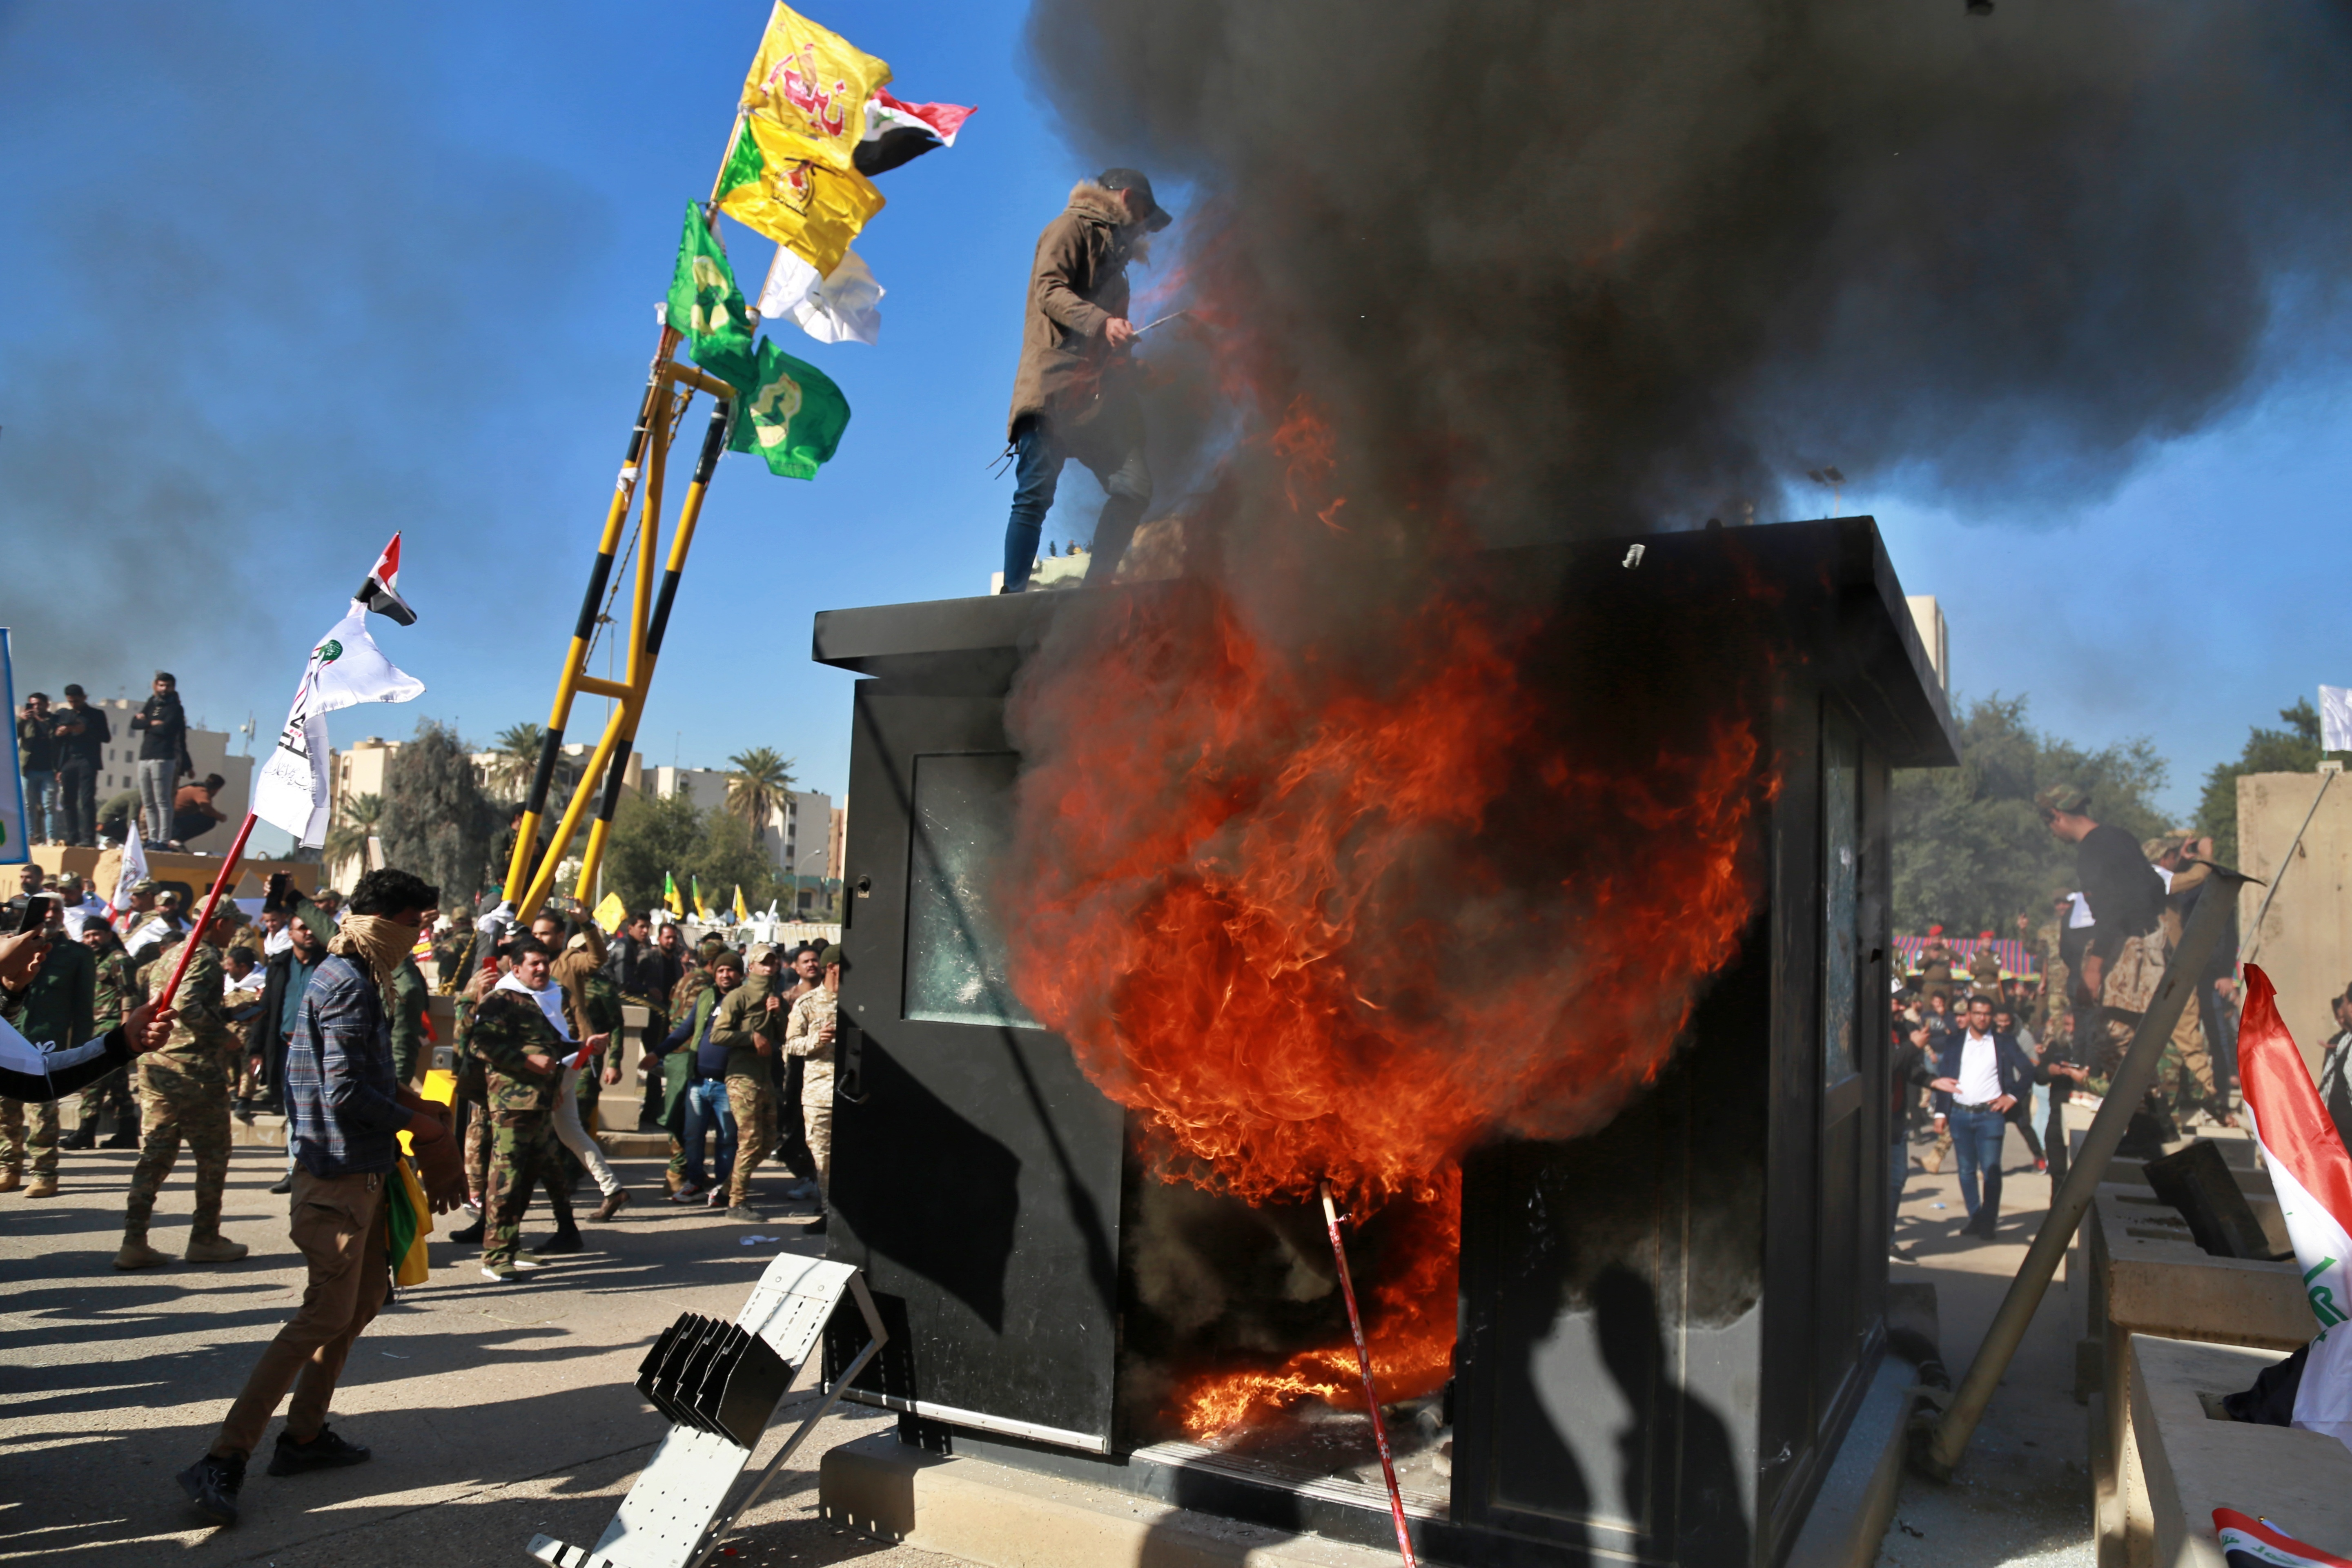 Protesters burn property in front of the U.S. embassy compound, in Baghdad, Iraq, Tuesday, Dec. 31, 2019. Dozens of angry Iraqi Shiite militia supporters broke into the U.S. Embassy compound in Baghdad on Tuesday after smashing a main door and setting fire to a reception area, prompting tear gas and sounds of gunfire.